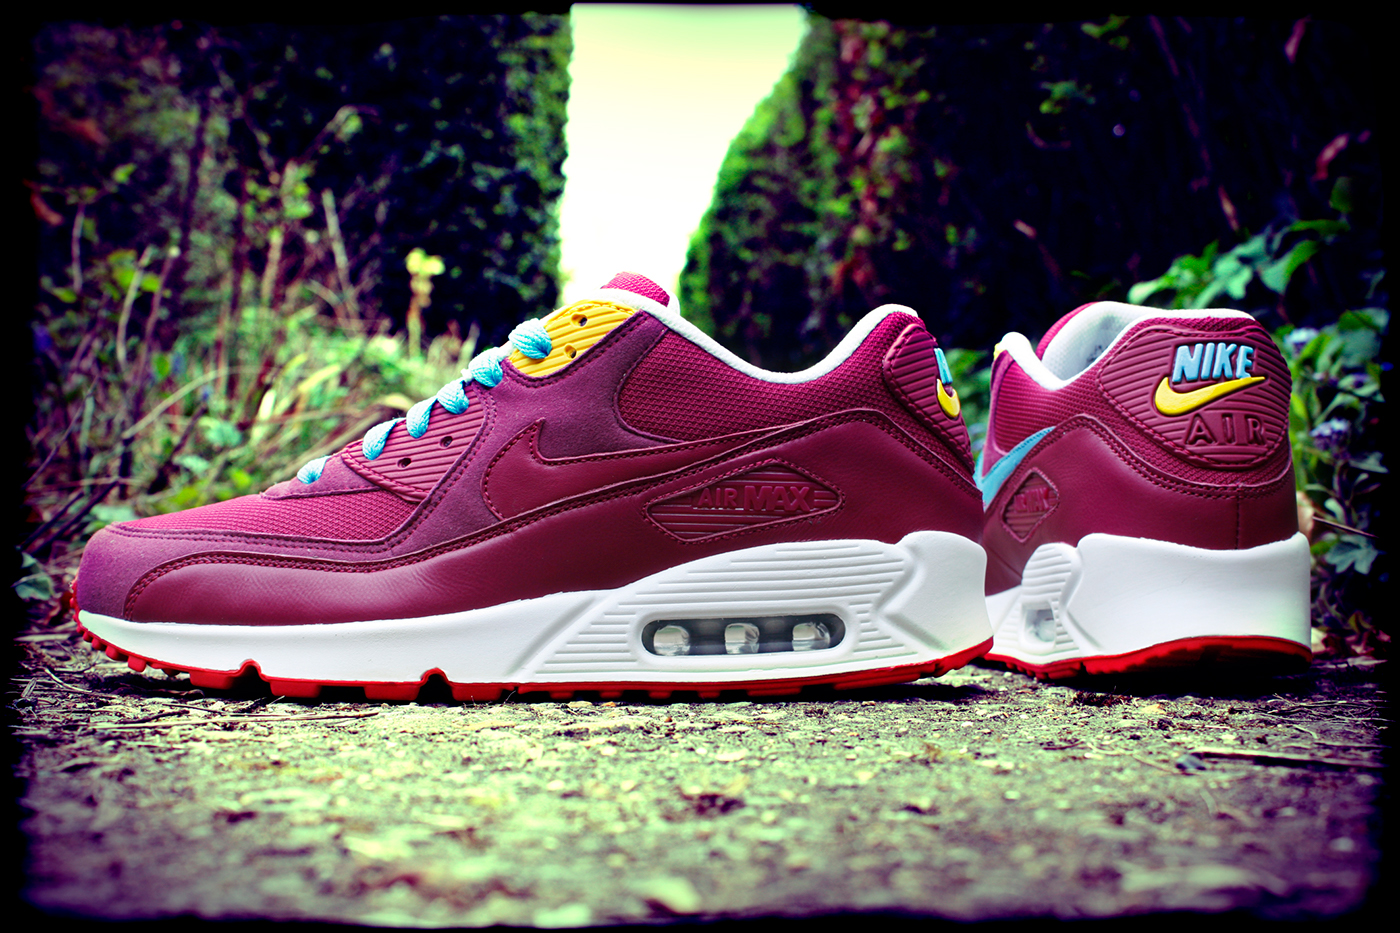 Parpadeo erección Tristemente  Nike Air Max 90 x 'Parra' Custom on Behance